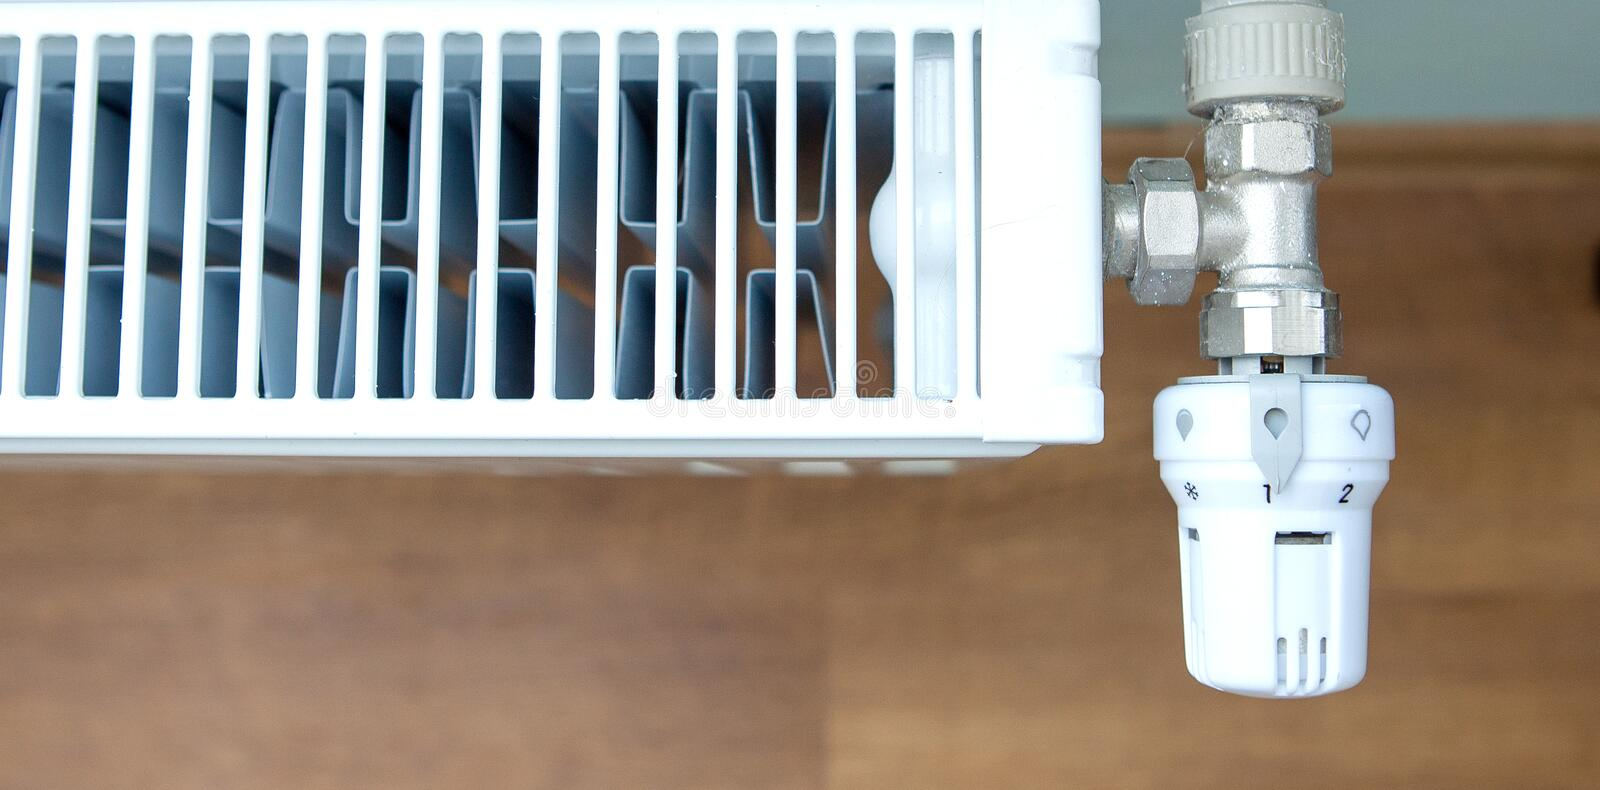 A white heating radiator on the interior wall royalty free stock photos